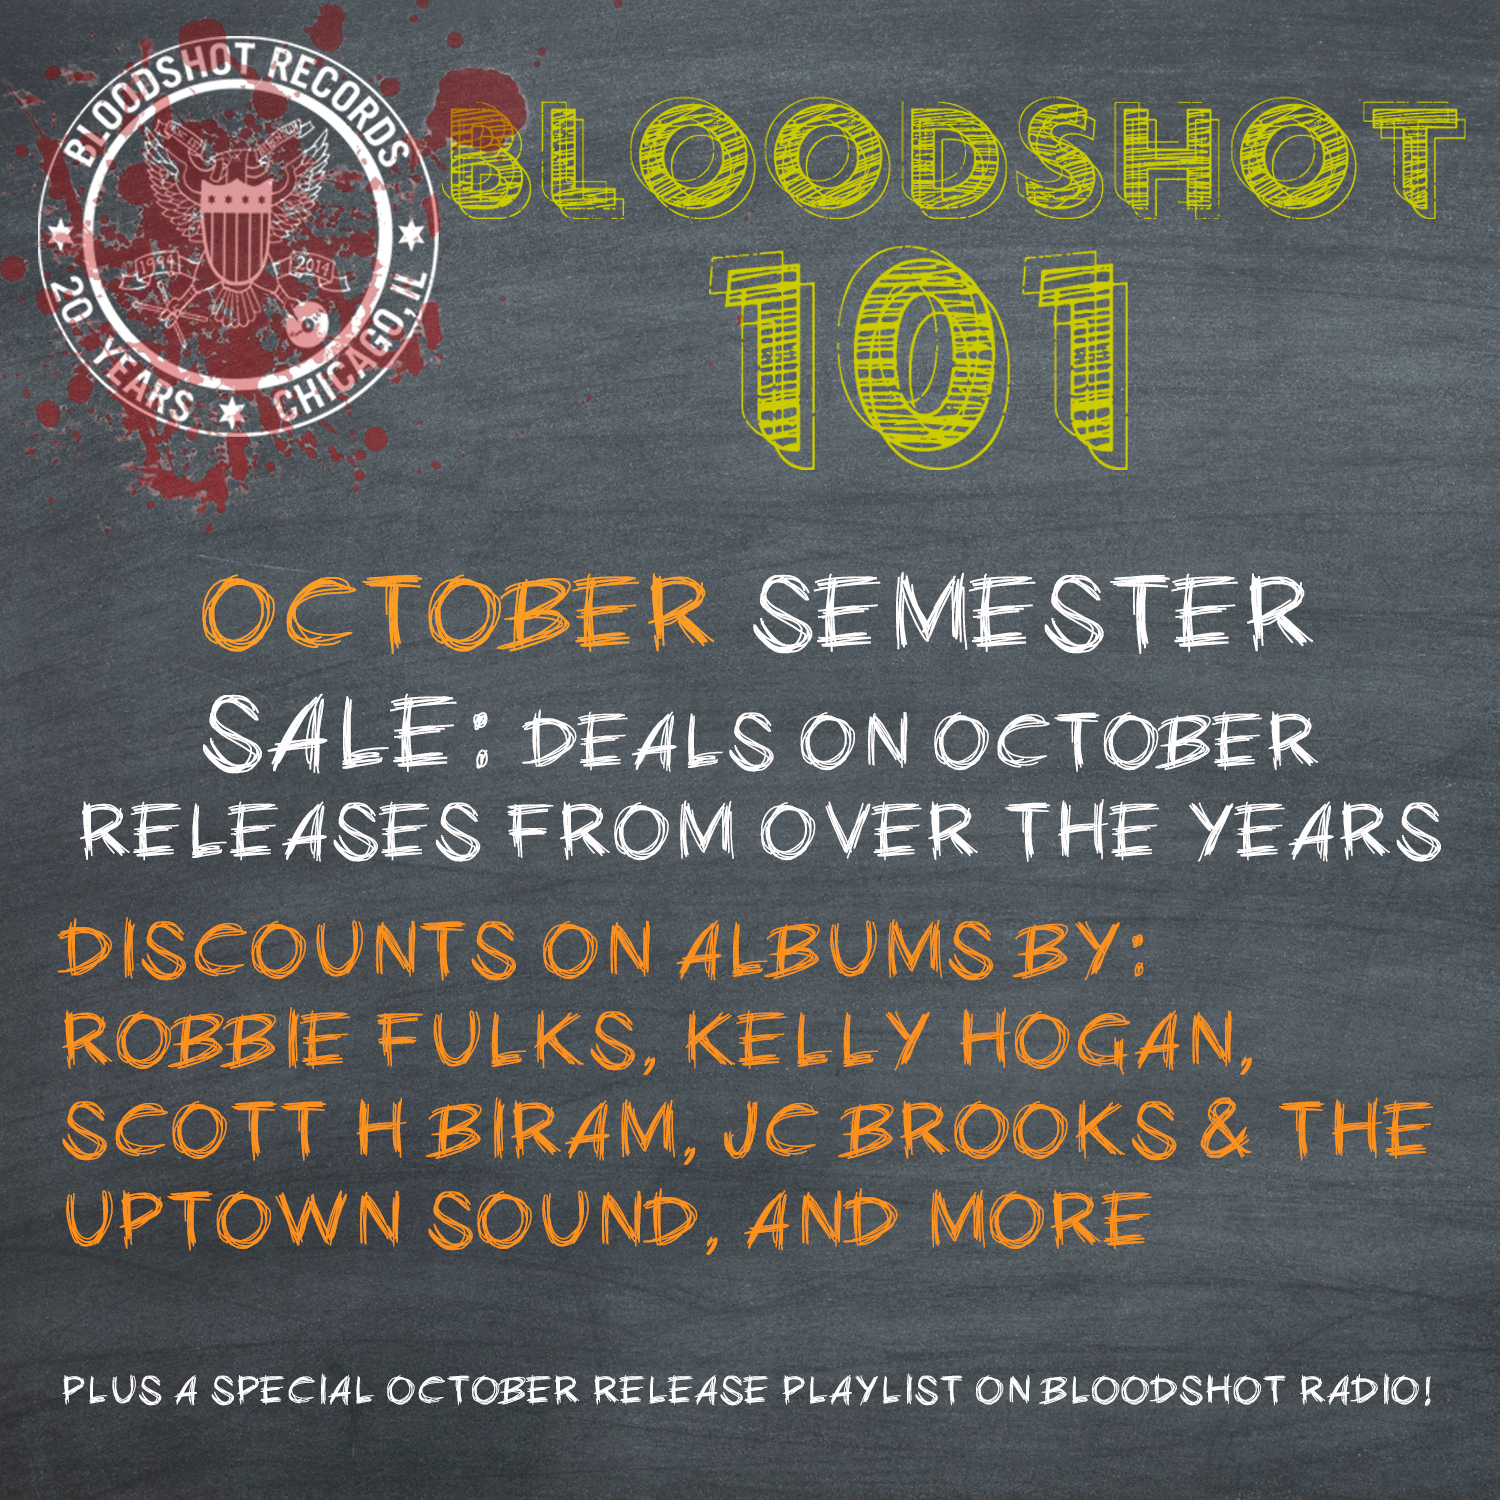 Bloodshot 101 October Sale